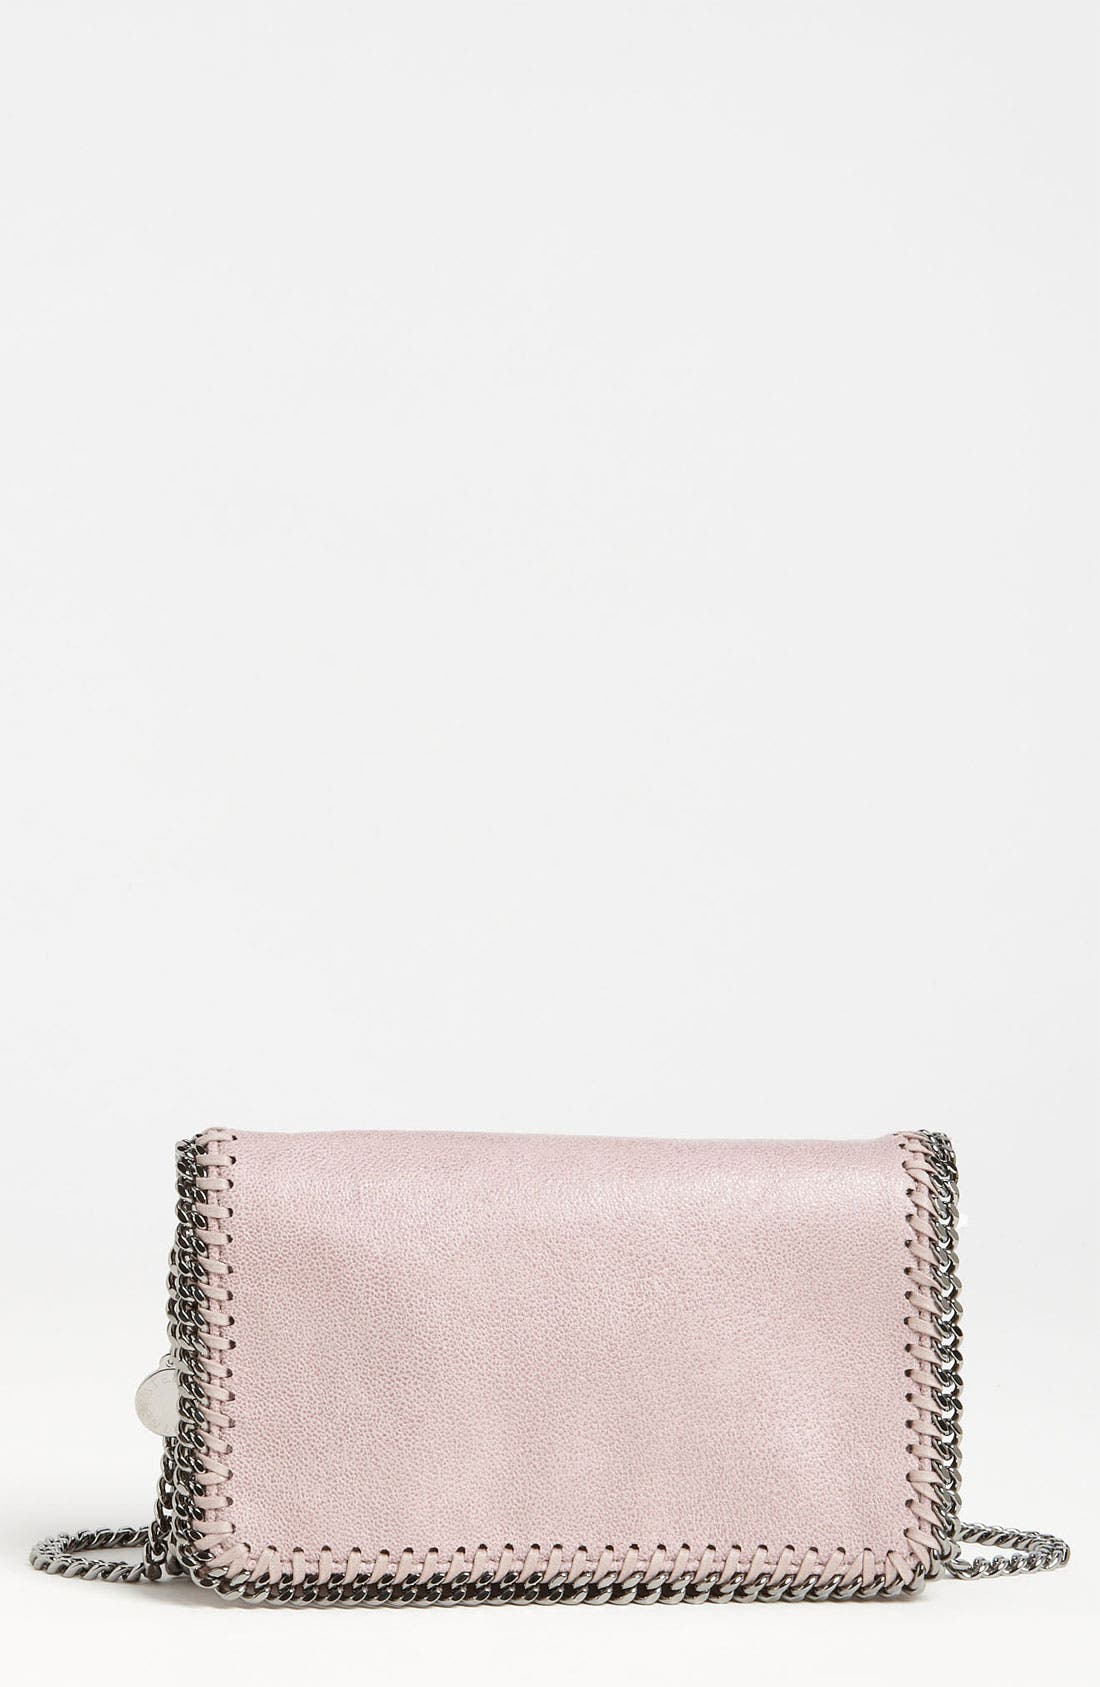 Alternate Image 1 Selected - Stella McCartney 'Falabella' Shaggy Deer Crossbody Bag